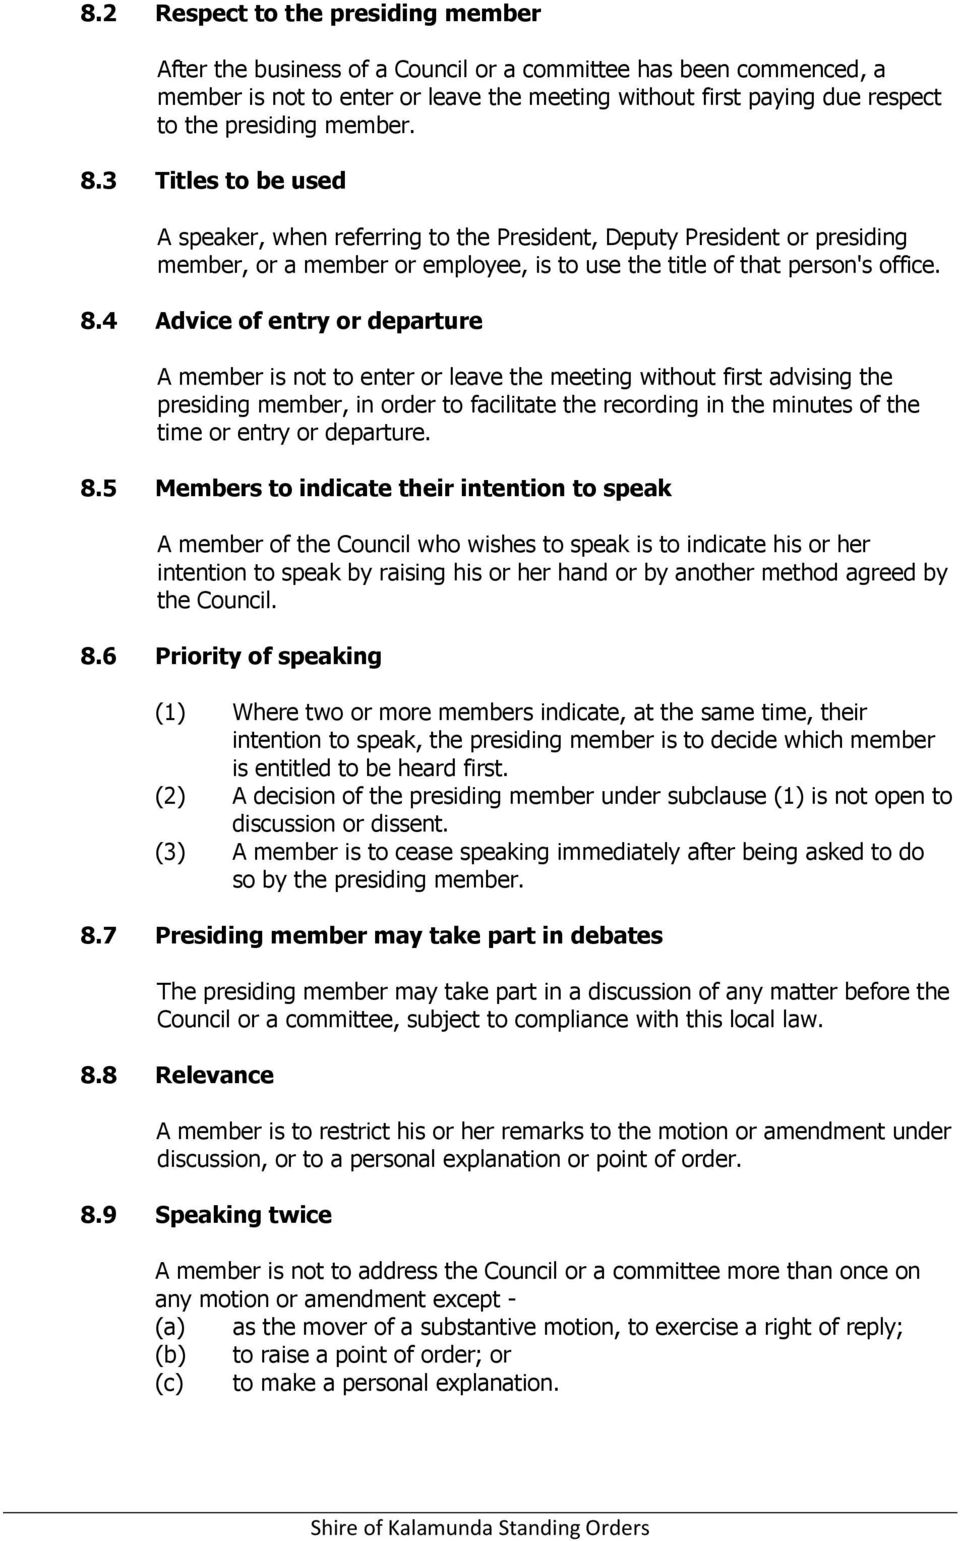 3 Titles to be used A speaker, when referring to the President, Deputy President or presiding member, or a member or employee, is to use the title of that person's office. 8.